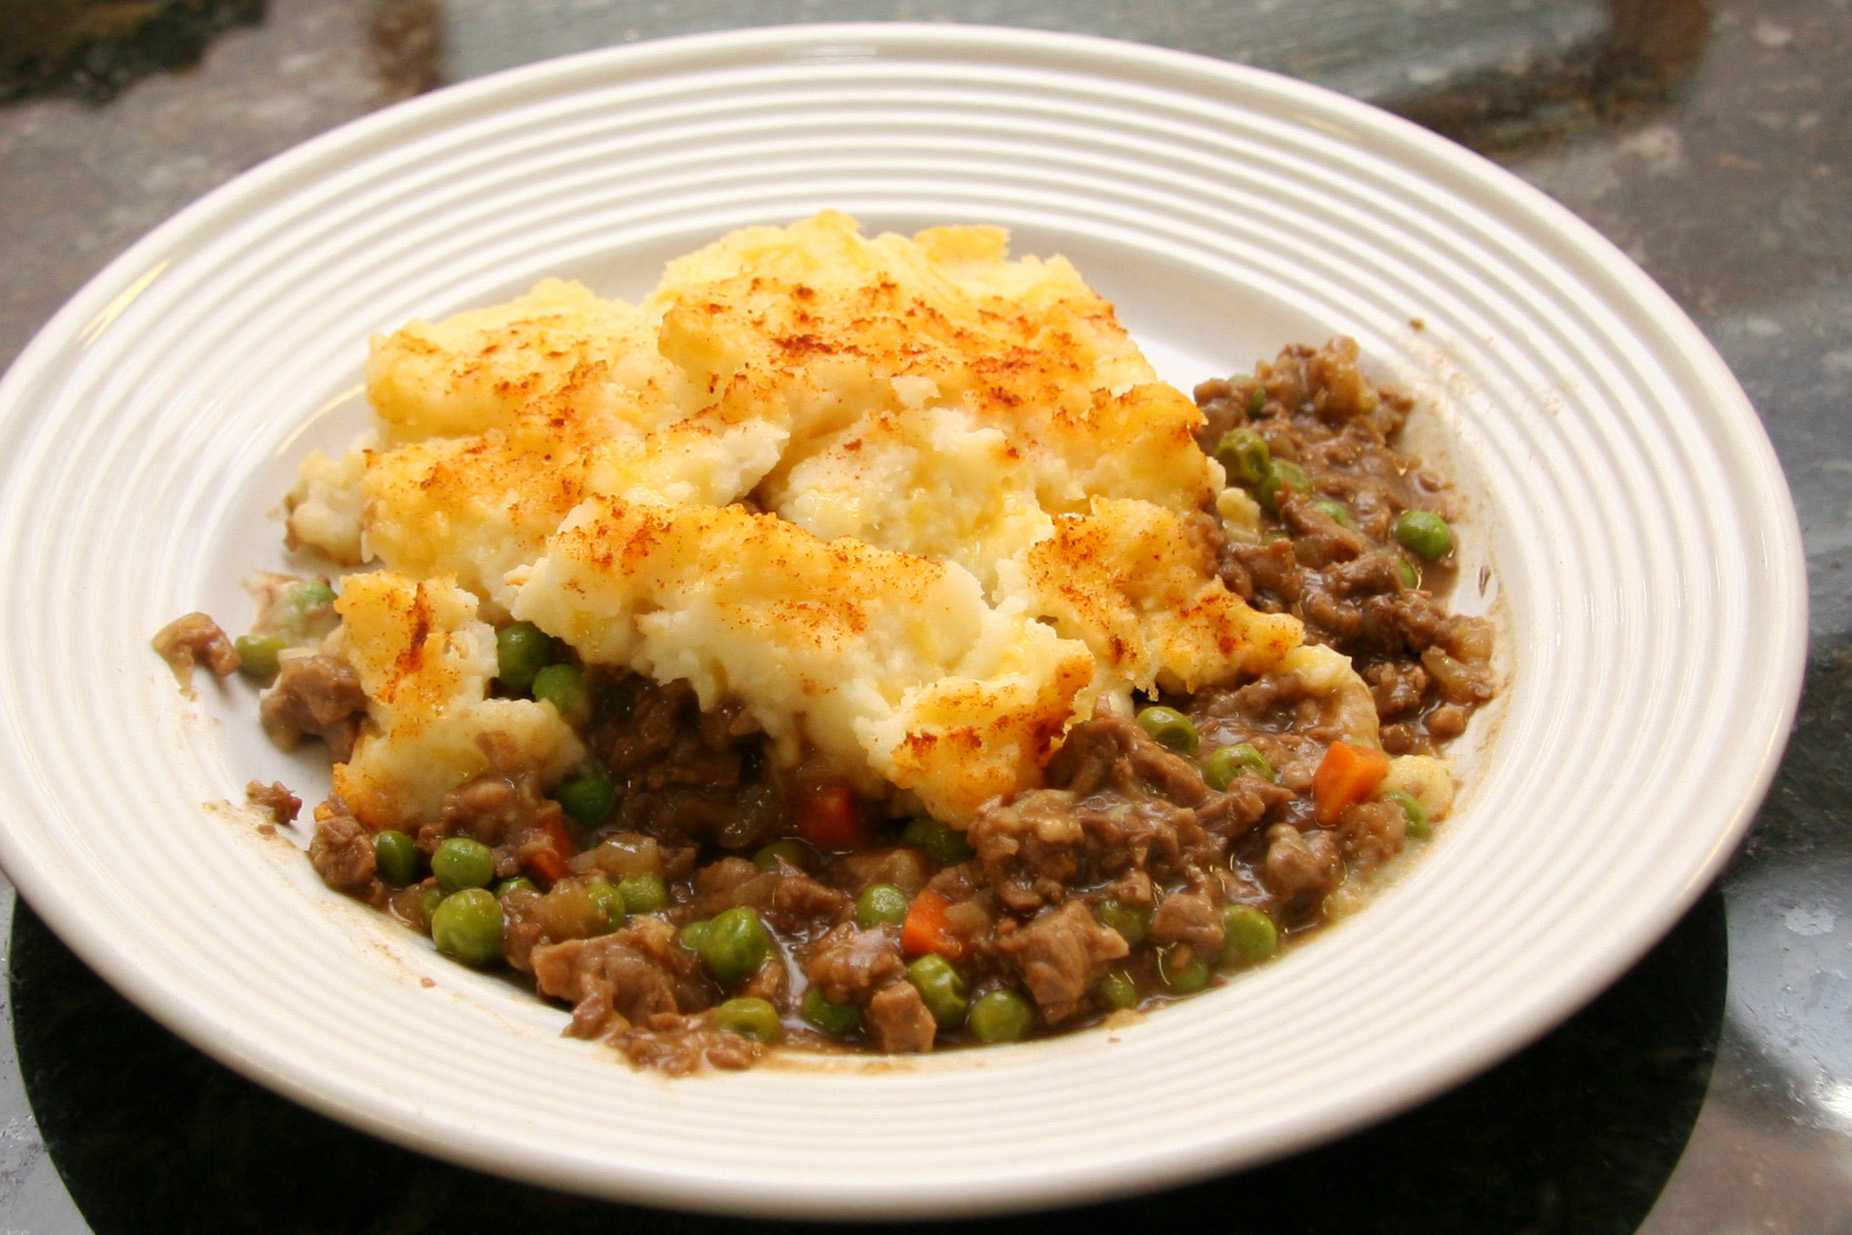 Cottage pie with beef, peas, carrots, and mashed potatoes